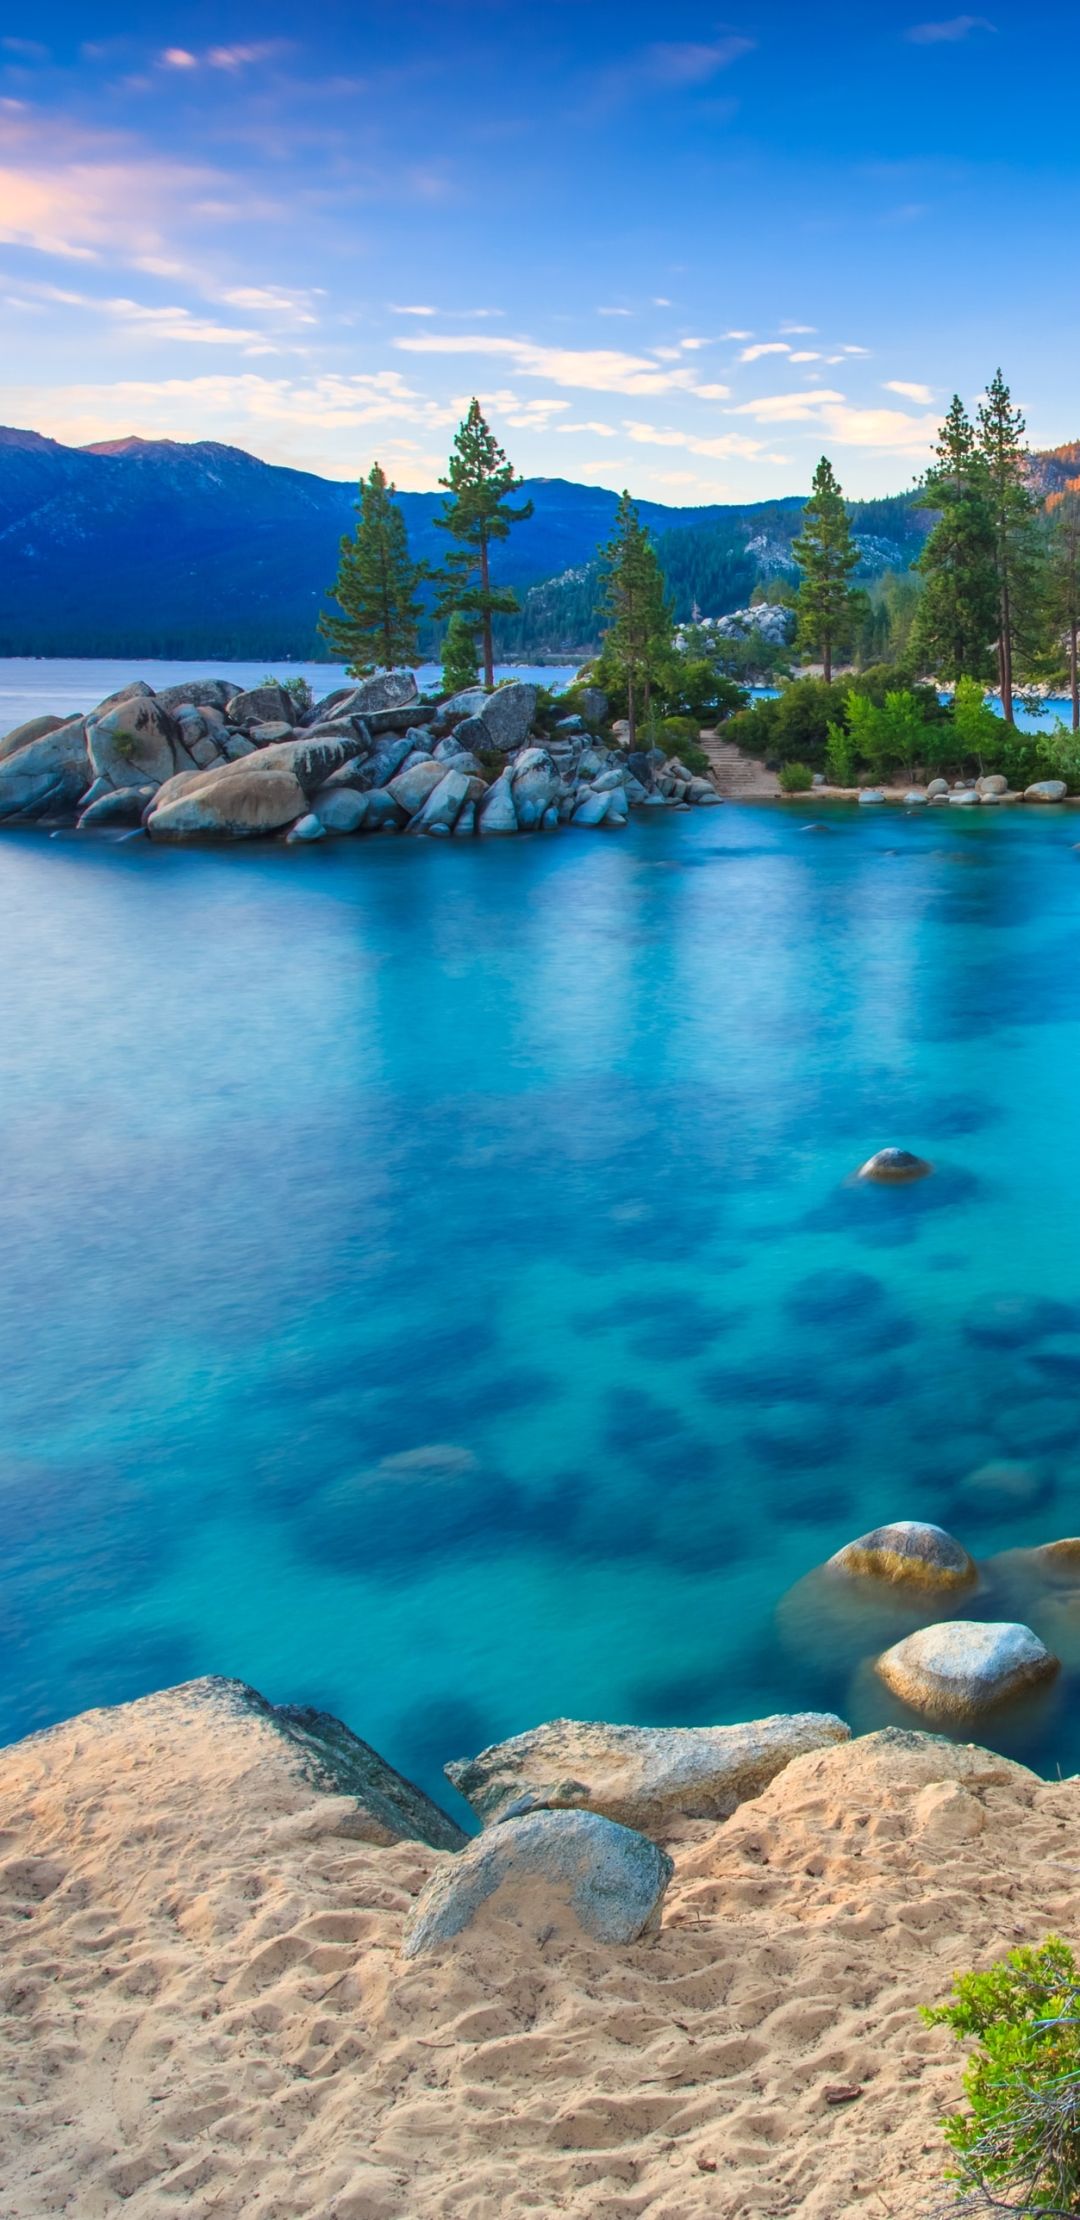 earth lake tahoe 1080x2220 wallpaper id 762543 mobile abyss earth lake tahoe 1080x2220 wallpaper